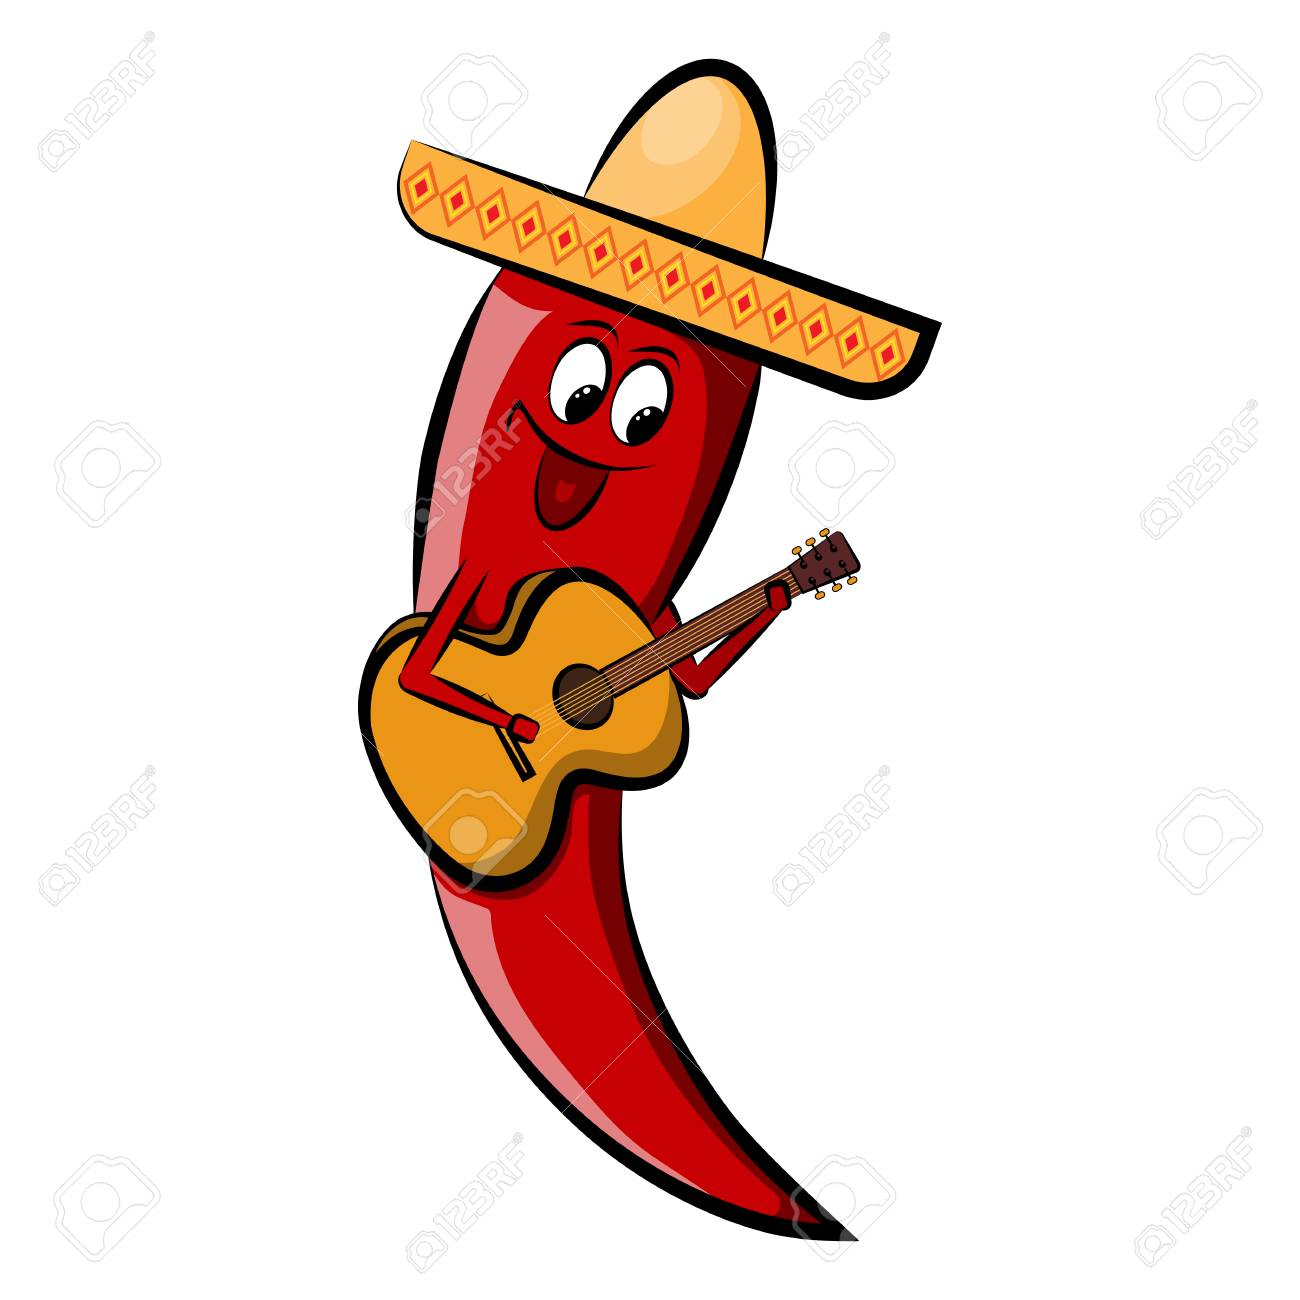 Red pepper in a sombrero with a guitar holidays cinco de mayo red pepper in a sombrero with a guitar holidays cinco de mayoctor illustration m4hsunfo